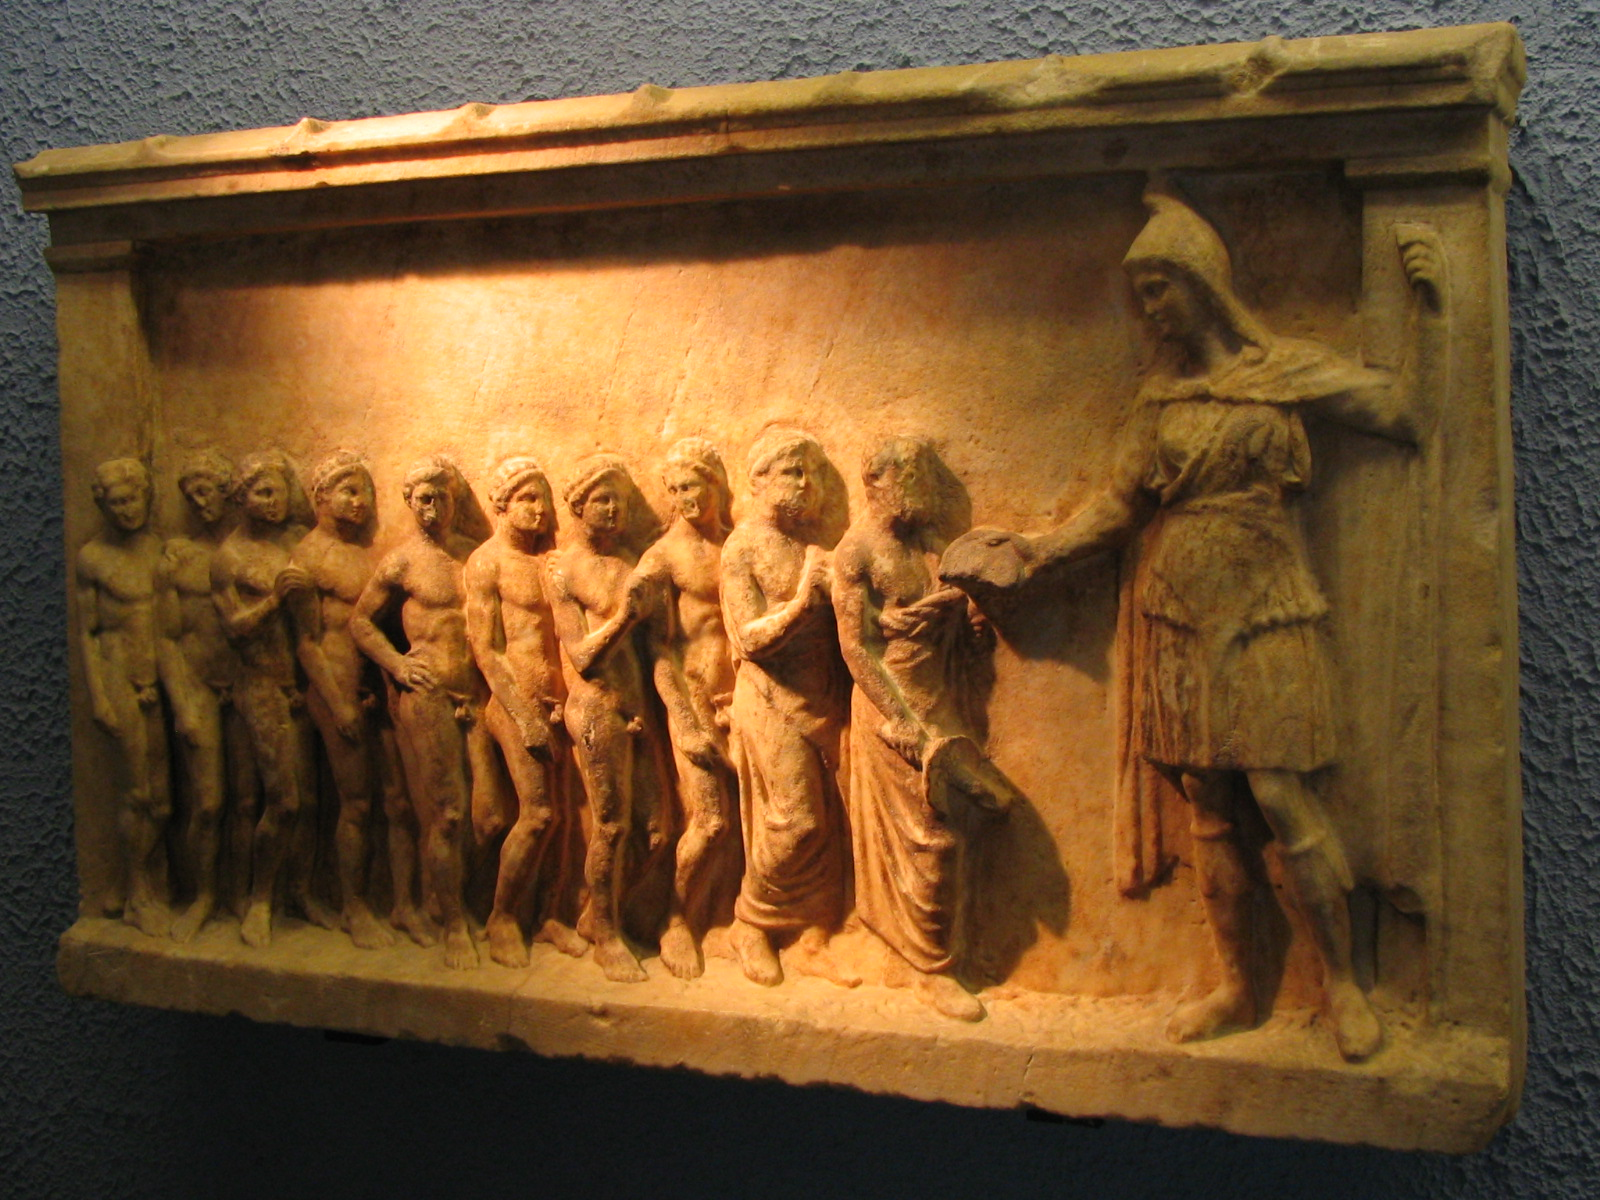 The goddess Bendis and worshippers (from Piraeus)